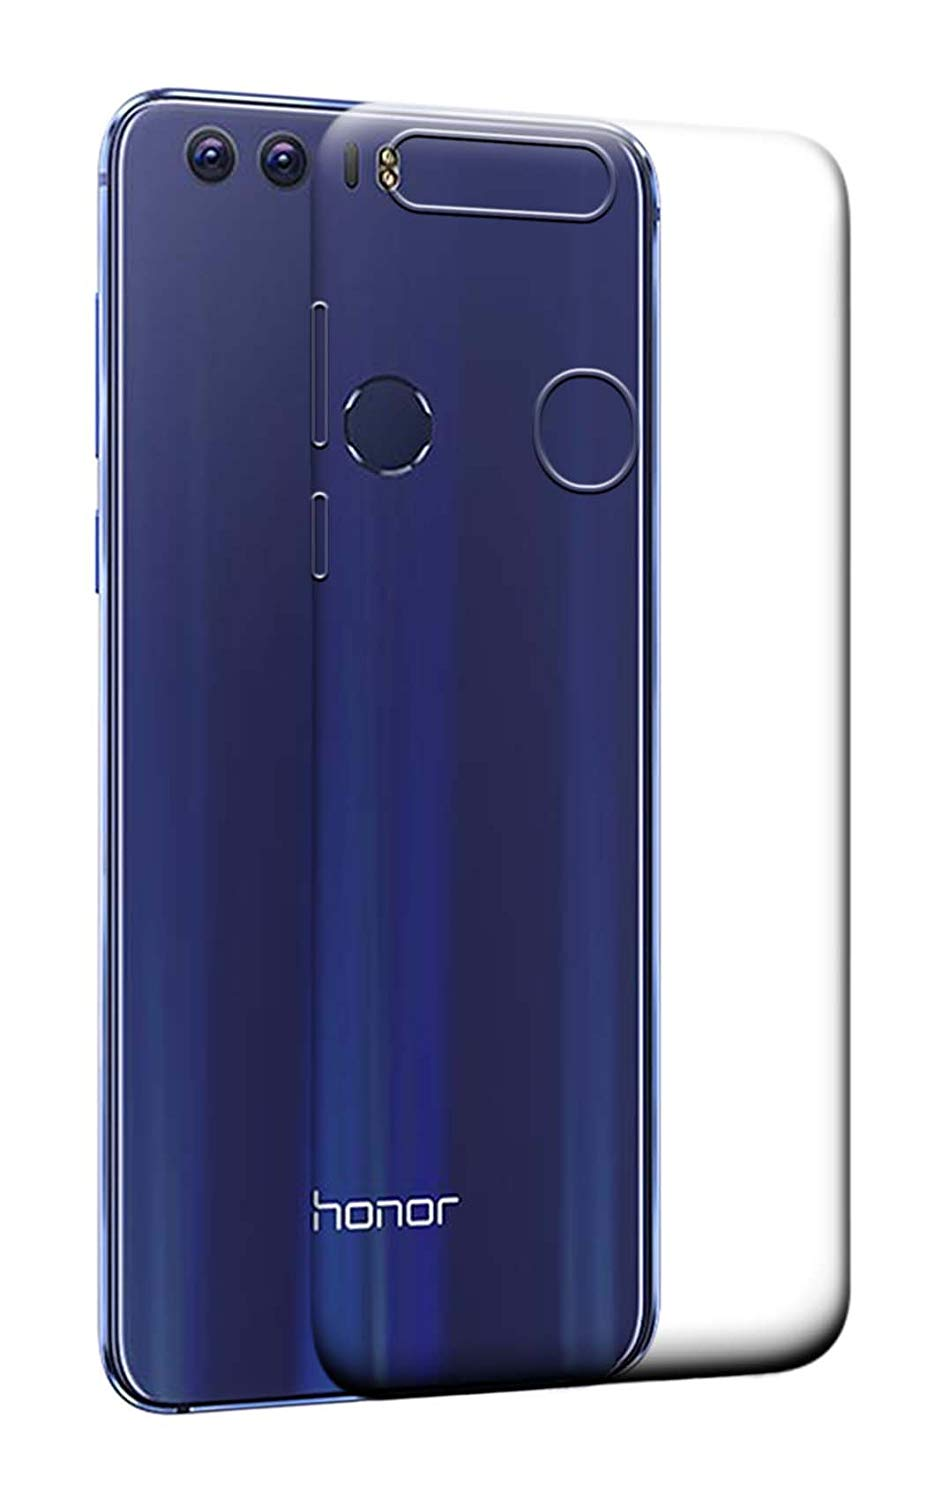 Huawei Honor 8 Silicone Soft Back Case Cover (Transparent)